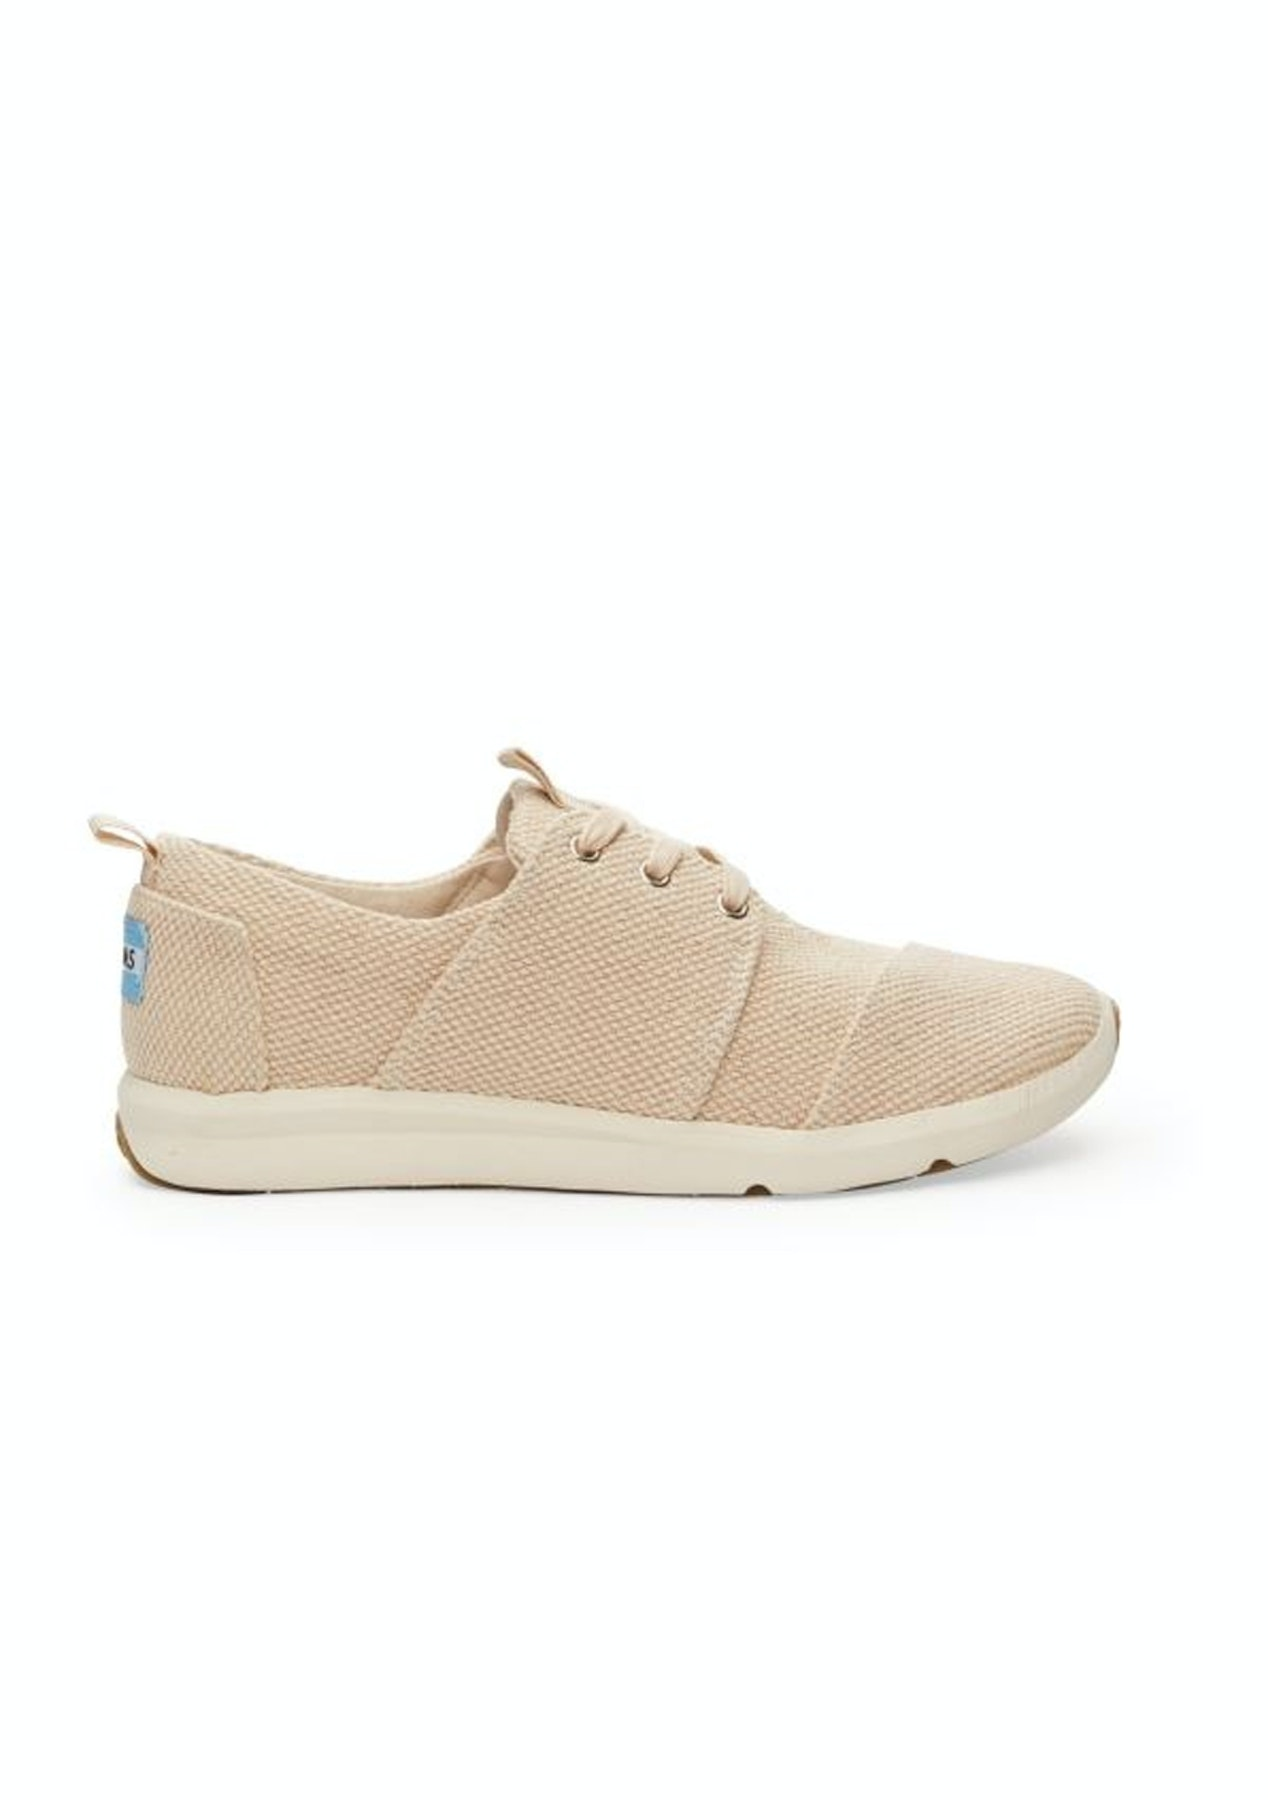 b57cf4fac57 Toms - Womens Natural Canvas Textured Del Ray Sneaker - Winter Escape -  Onceit